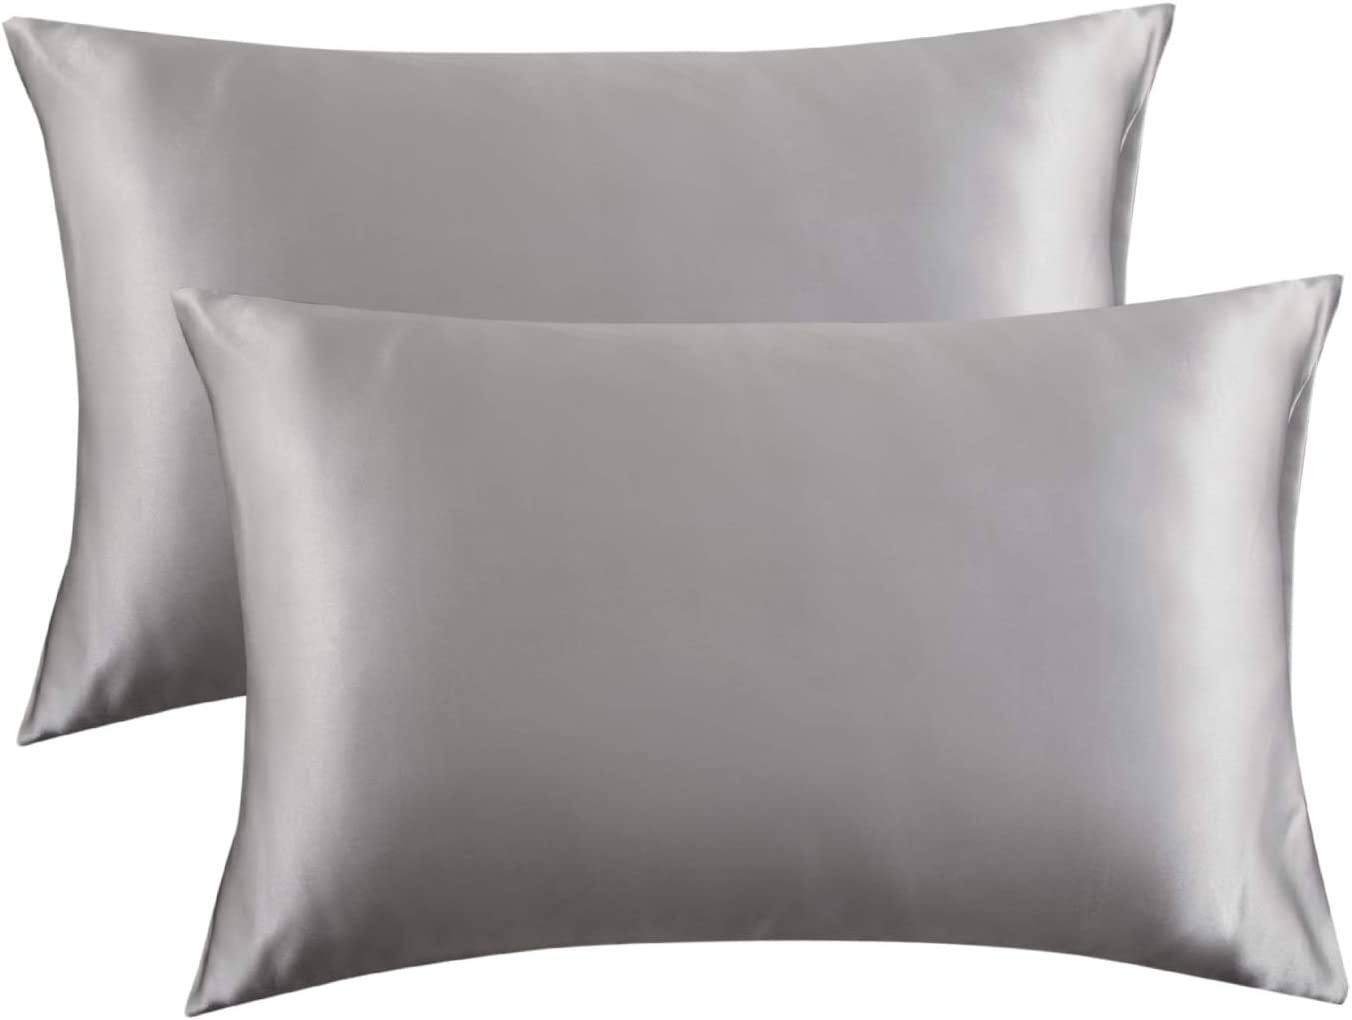 Bedsure Satin Pillowcase for Hair and Skin, 2-Pack - Queen Size (20x30 inches) Pillow Cases - Satin Pillow Covers with Envelope Closure, Silver Grey: Home & Kitchen